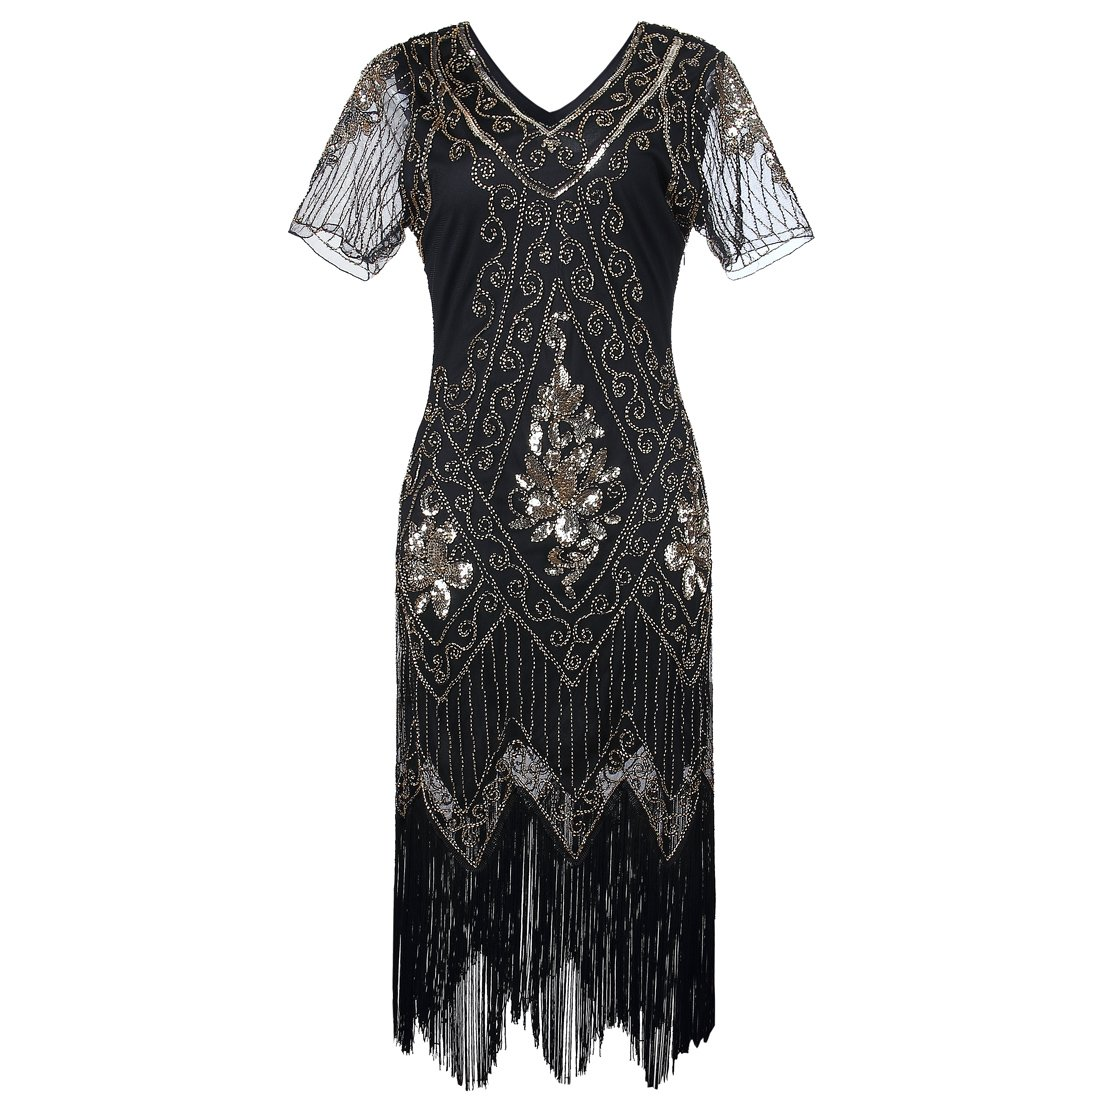 Black Flapper Dresses, 1920s Black Dresses JaosWish Gatsby 1920s Flapper Dress Women Vintage Sequin Fringe Beaded Art Deco Fancy Dress with Sleeve for Party Prom £38.99 AT vintagedancer.com